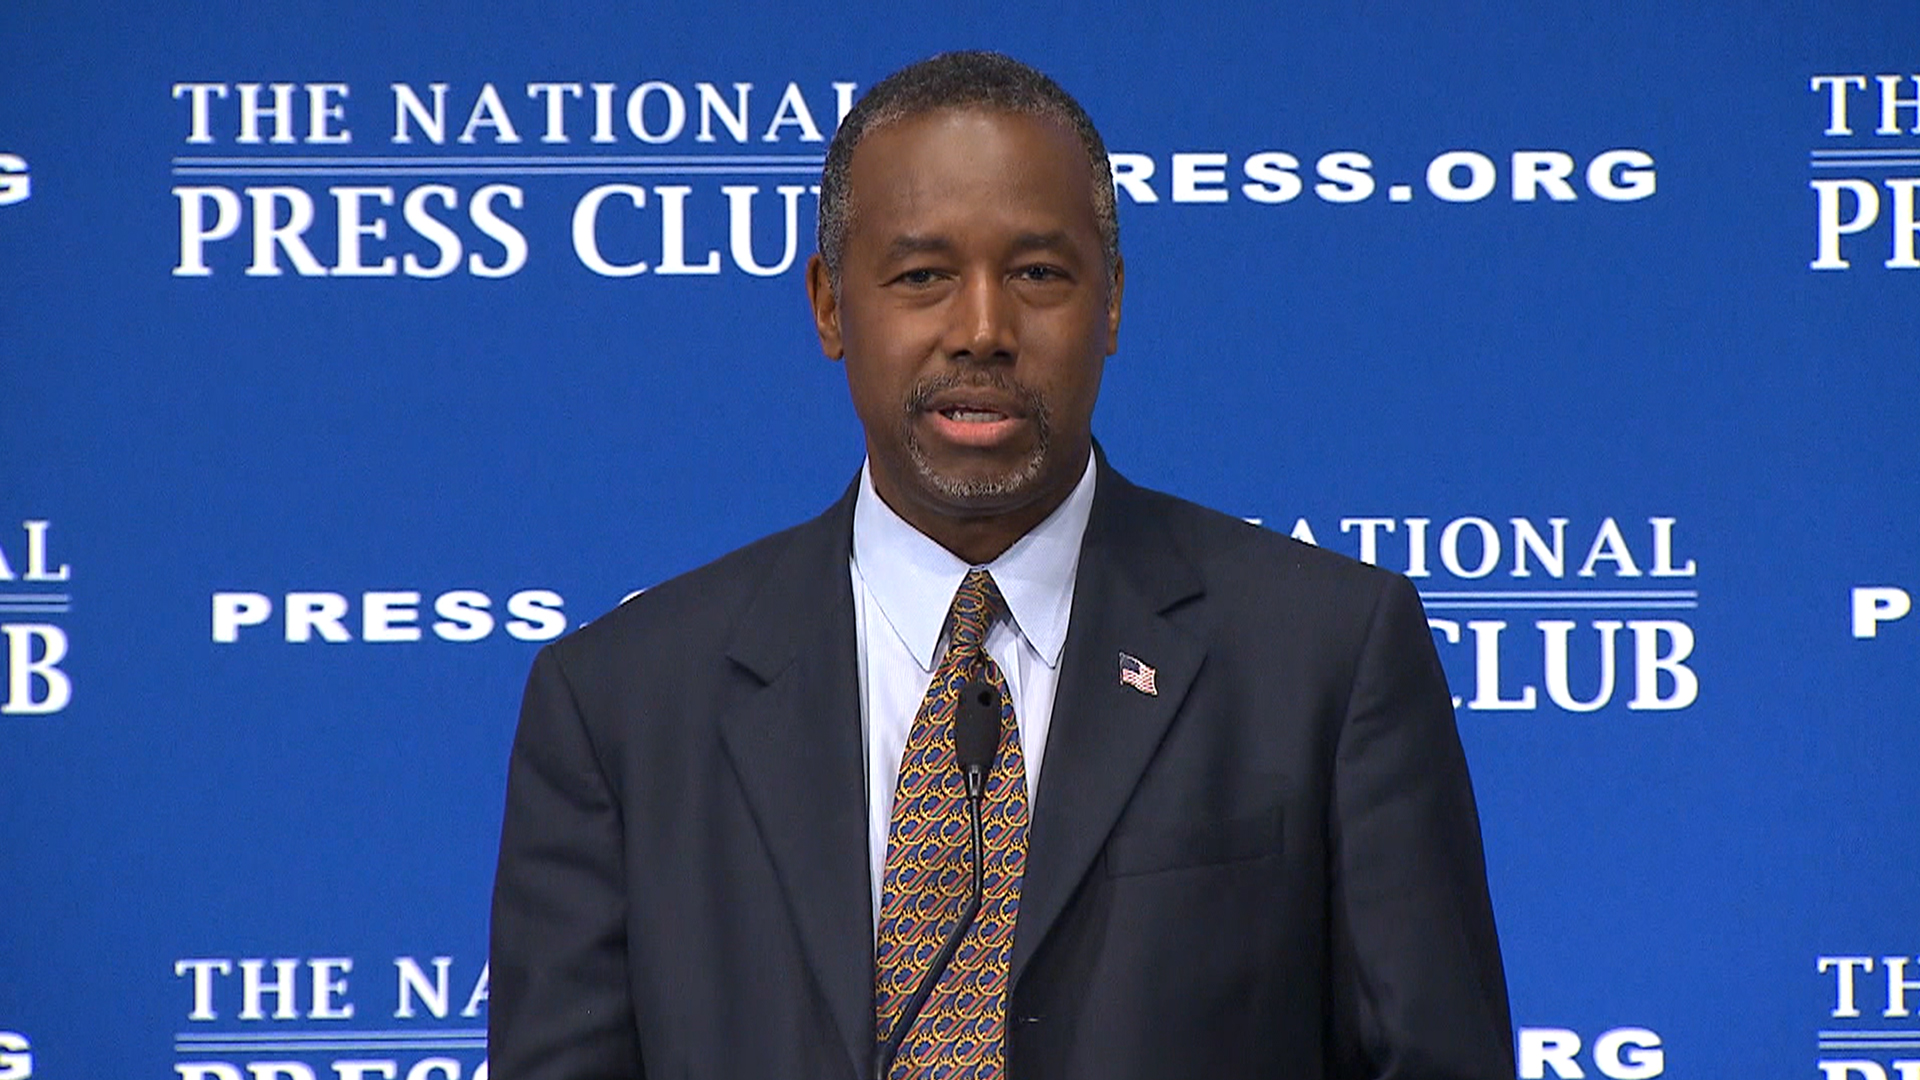 Donald Trump on the attack amid rising poll numbers for Ben Carson ...